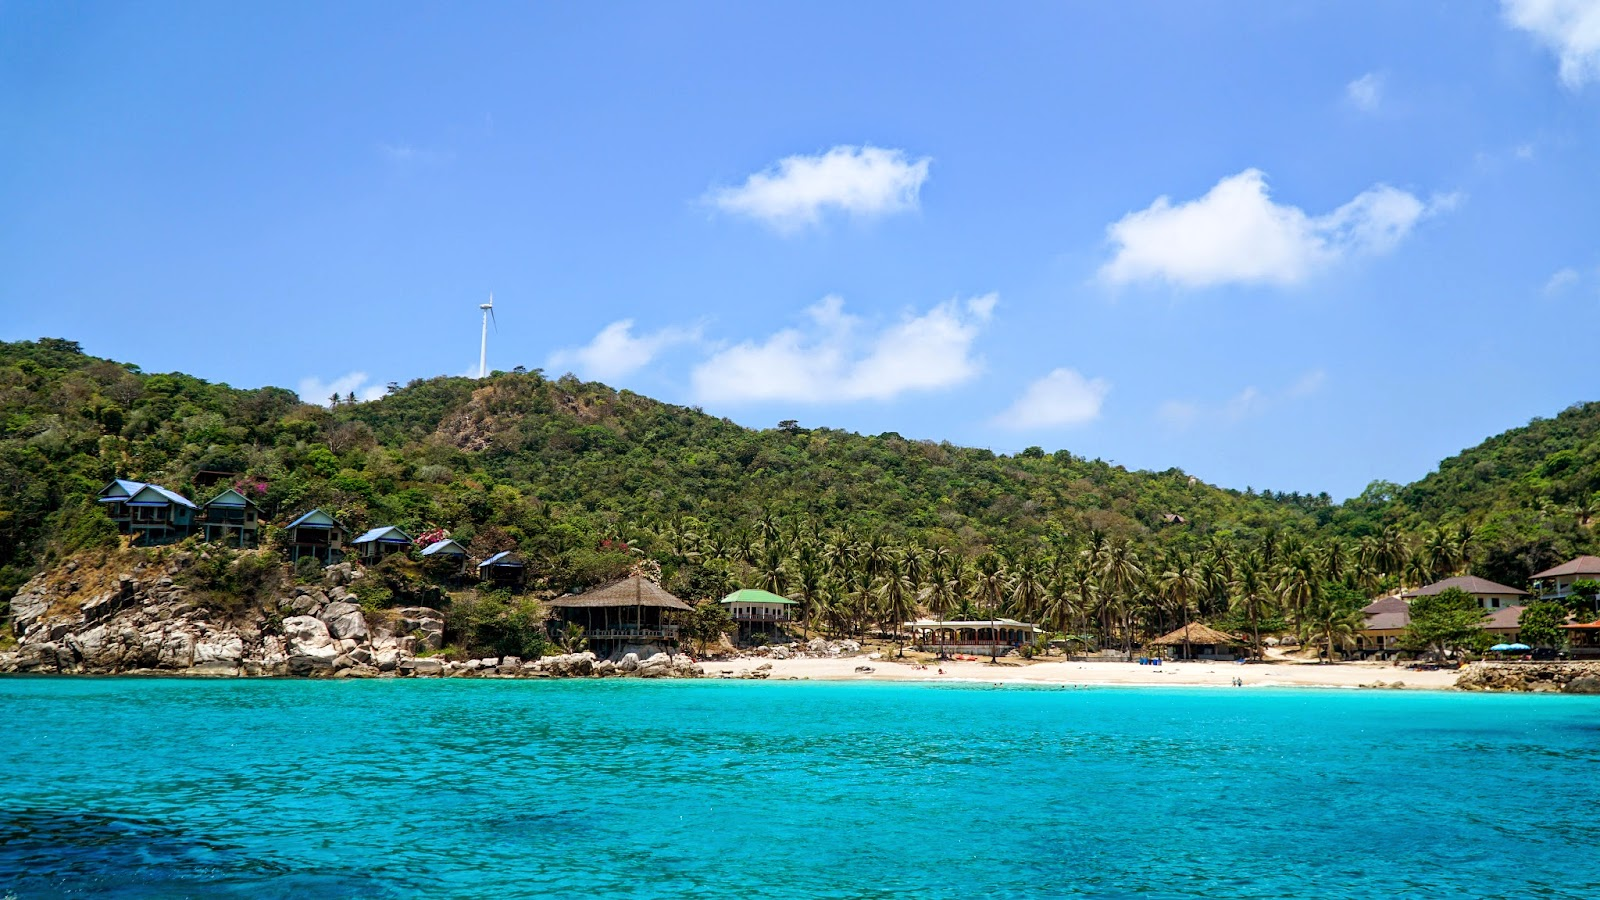 The second snorkeling site, Aow Leuk bay